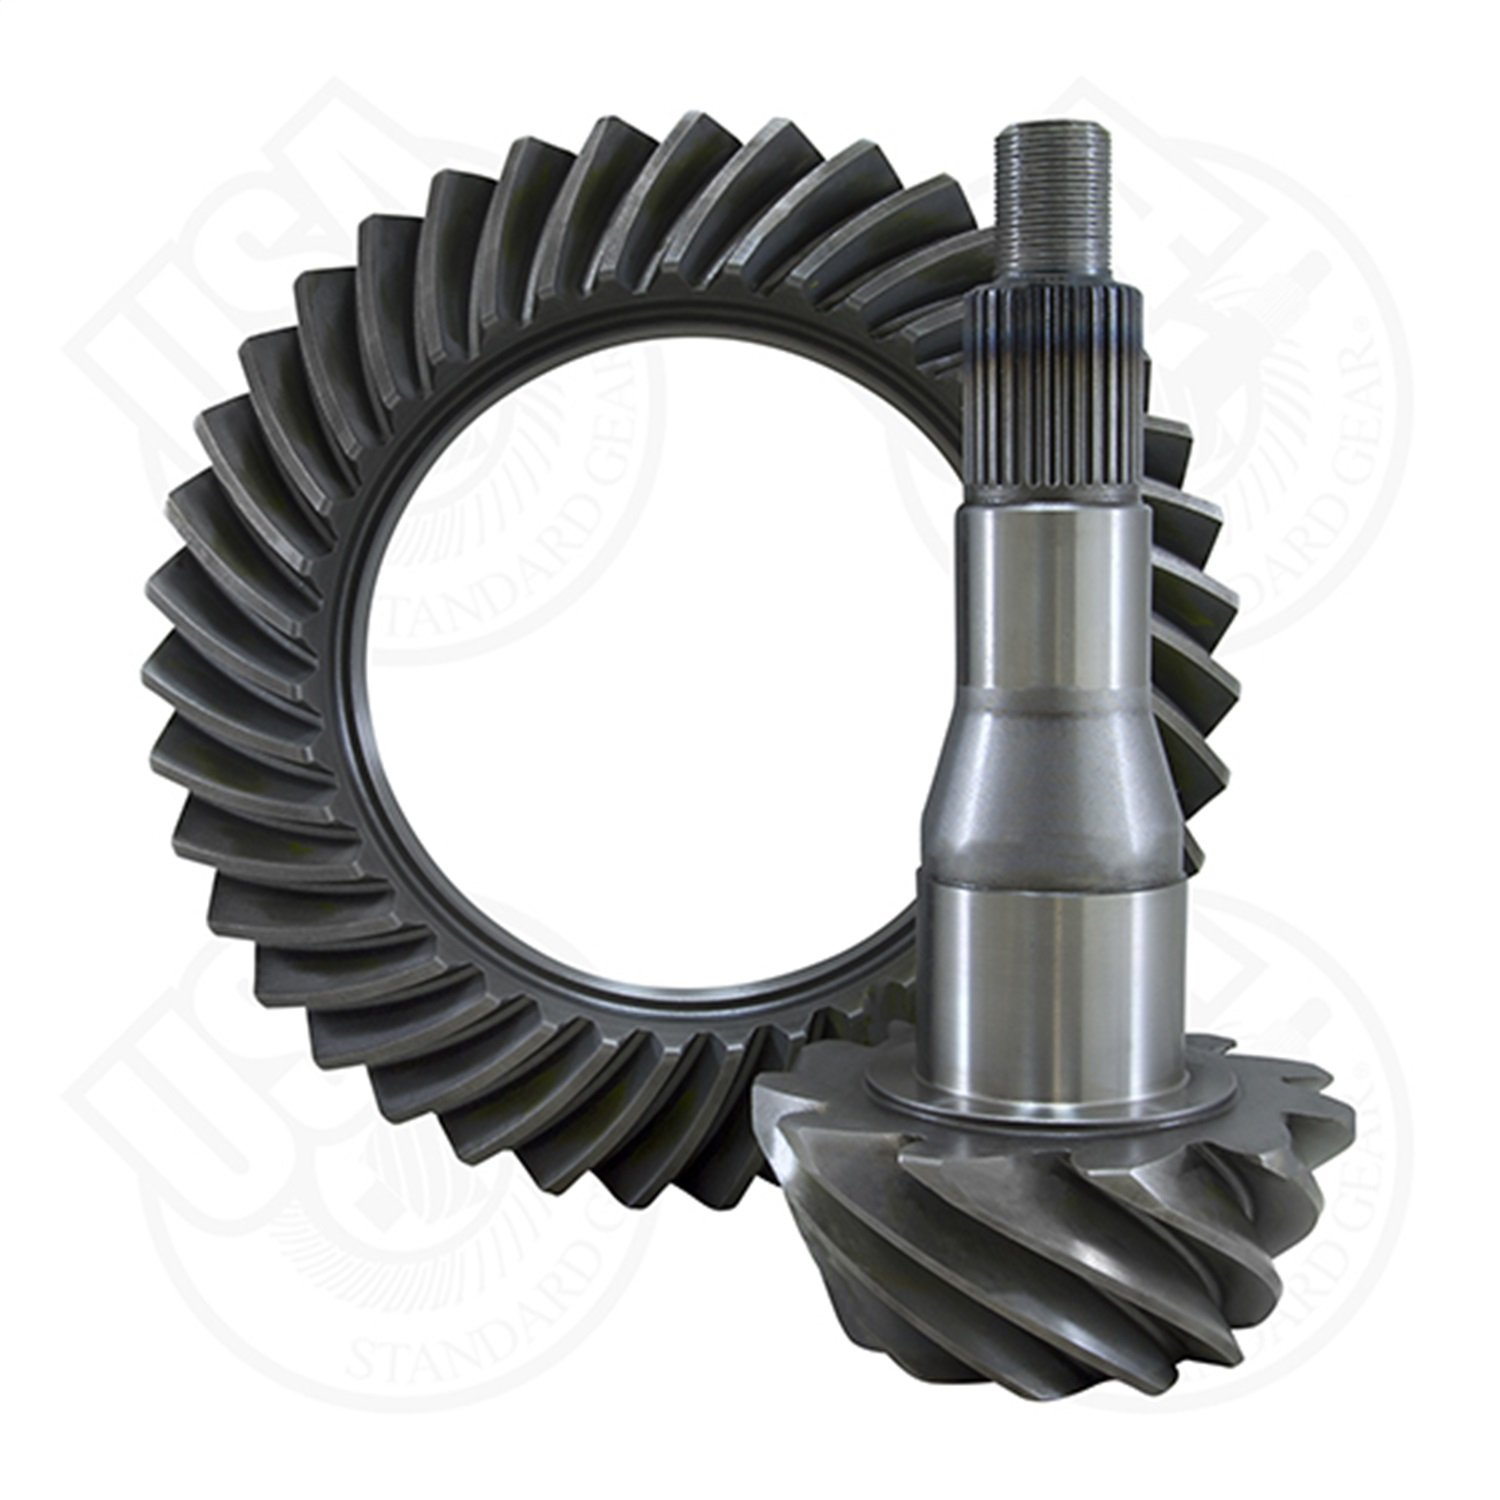 USA Standard Gear ZG F10.5-355-37 Ring /& Pinion Gear Set for Ford 10.5 Differential 3.55 ratio